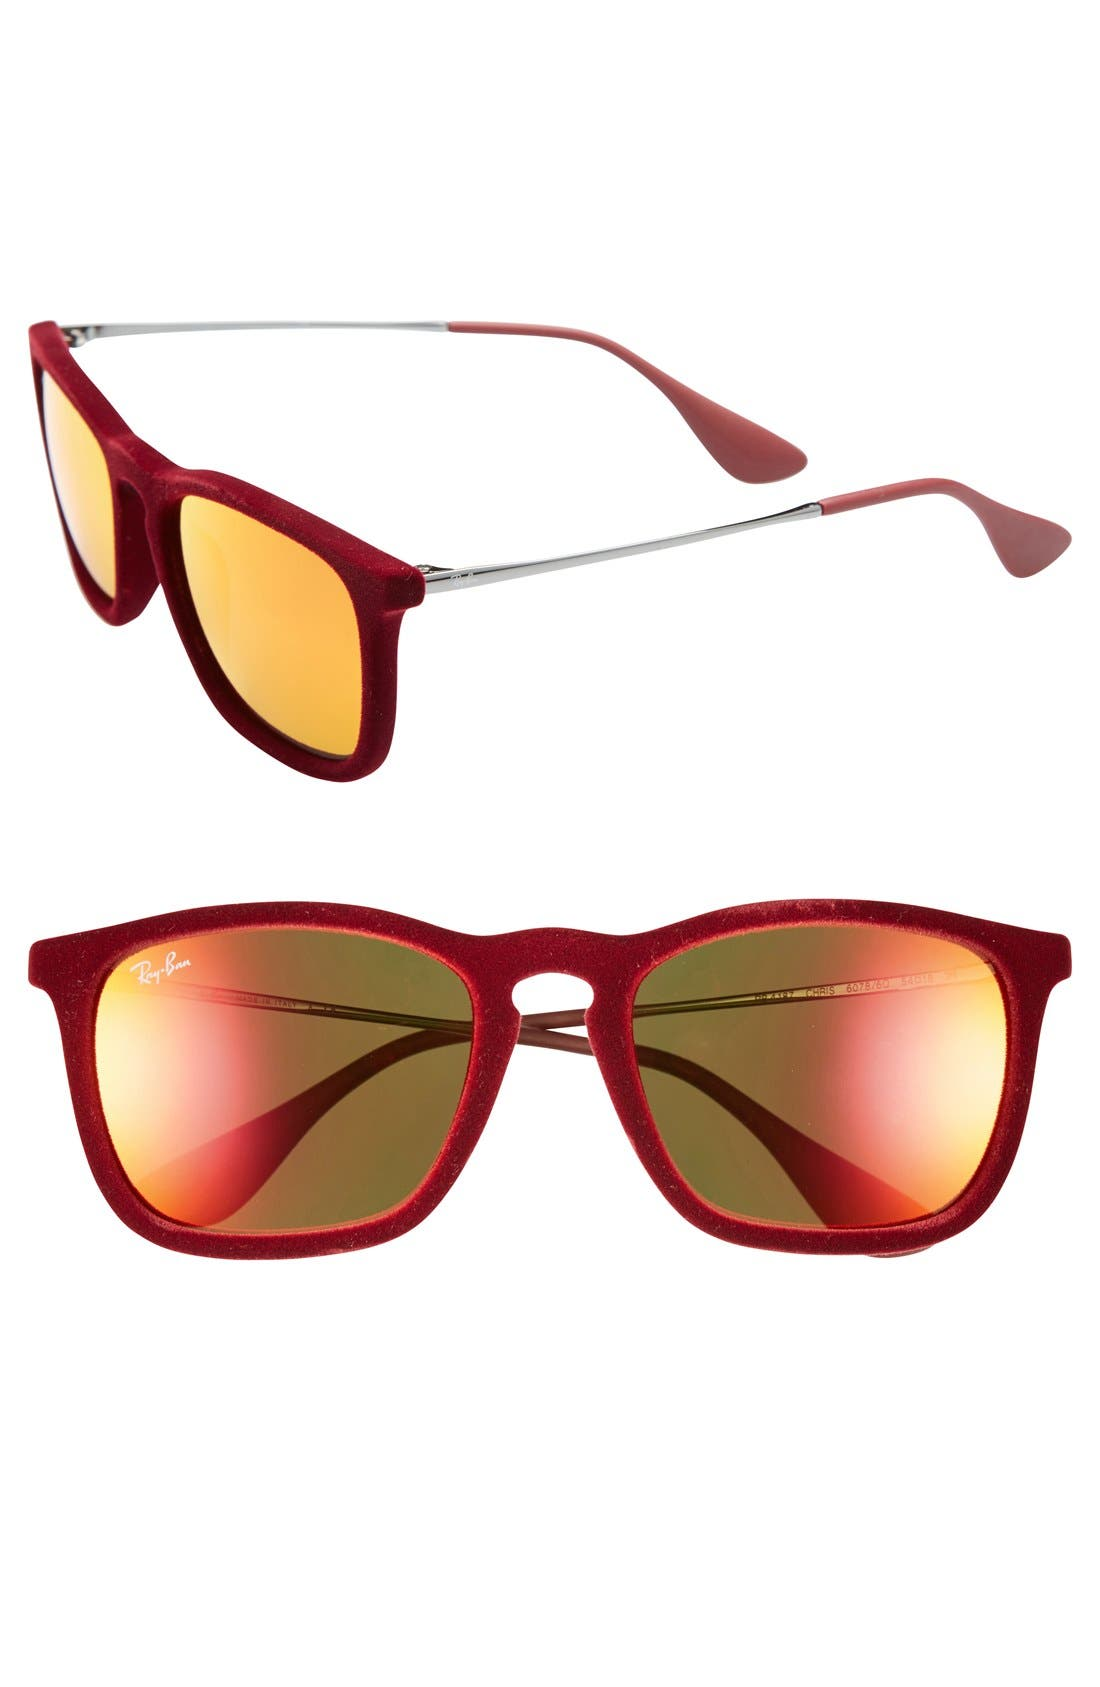 Main Image - Ray-Ban 'Youngster' Velvet 55mm Sunglasses